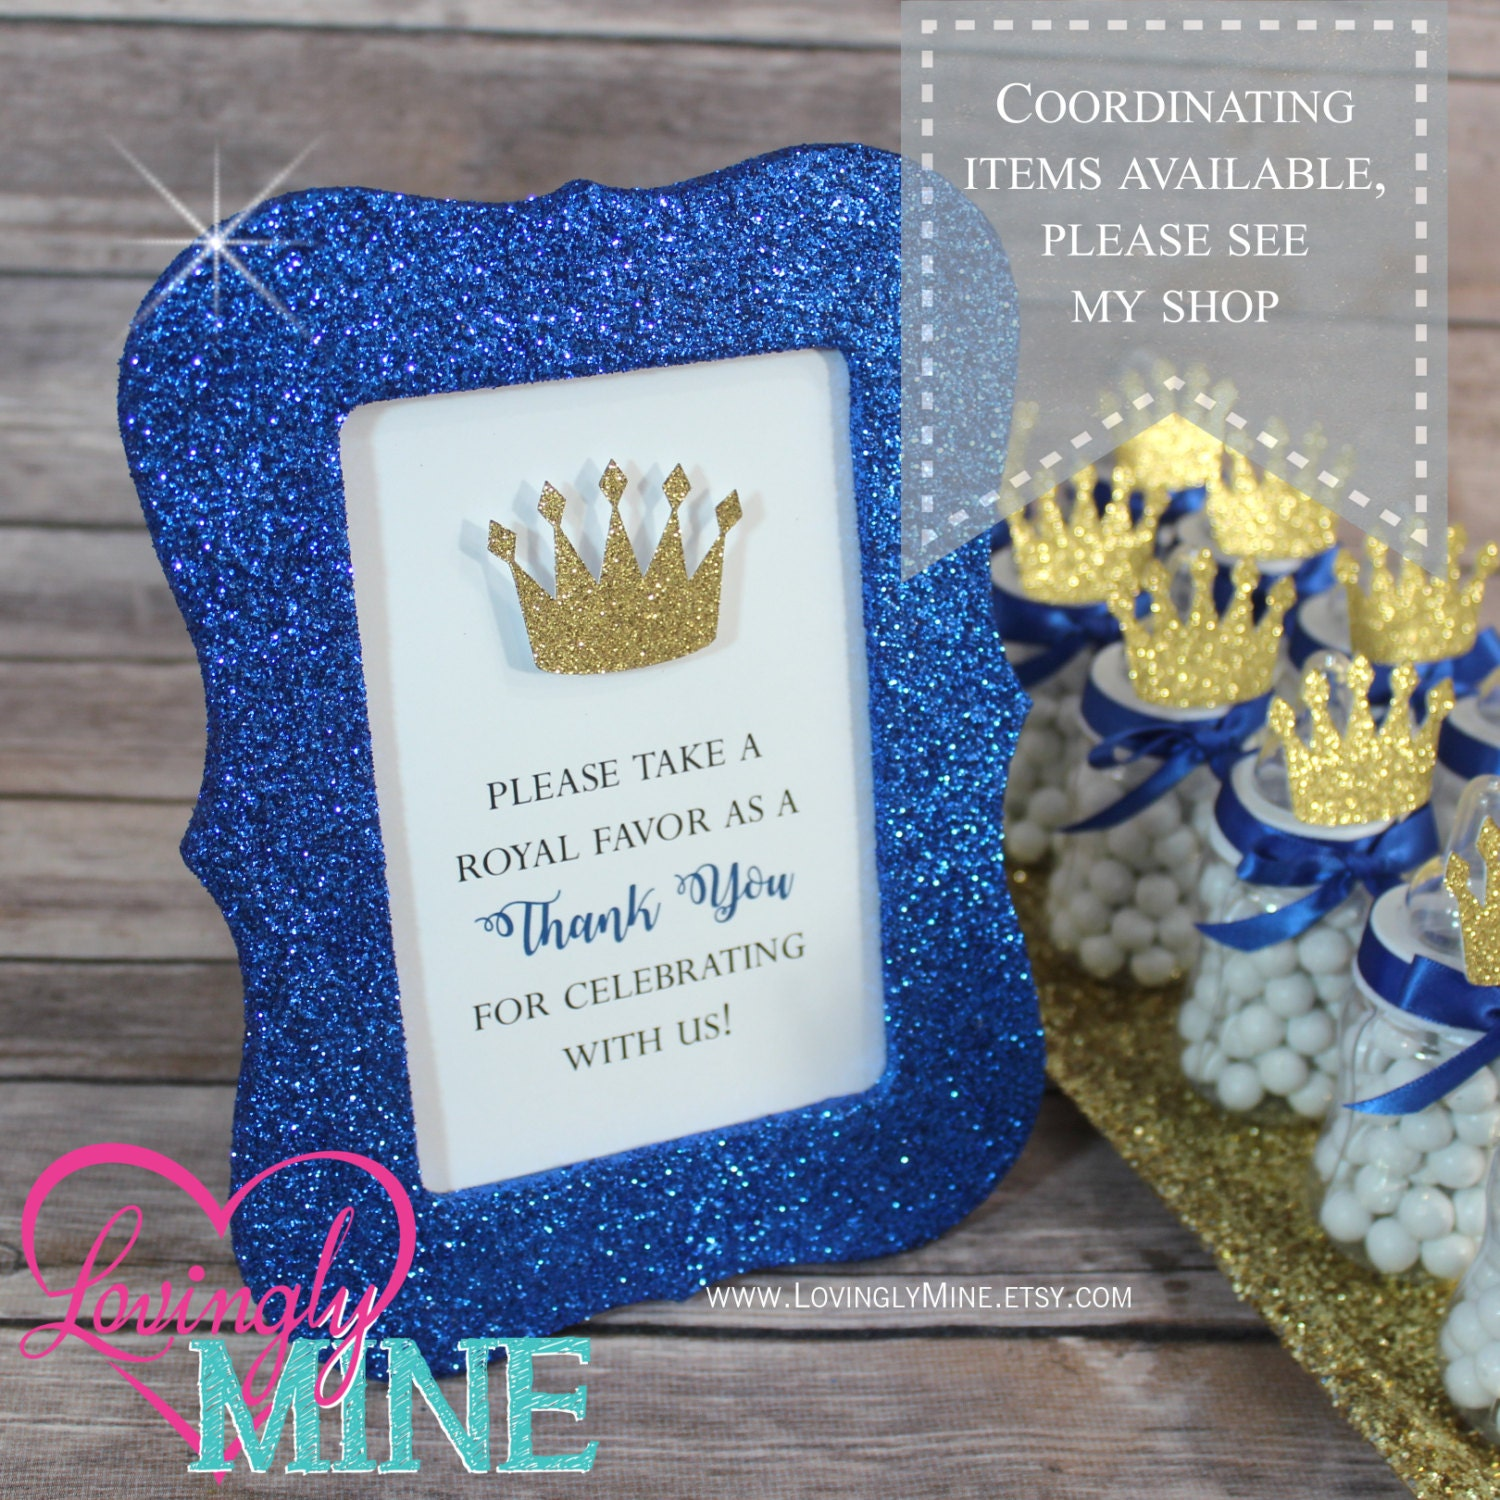 Prince Baby Shower Favors: 4 X 6 Frame Glitter Royal Blue Favor Table Sign Glitter Gold